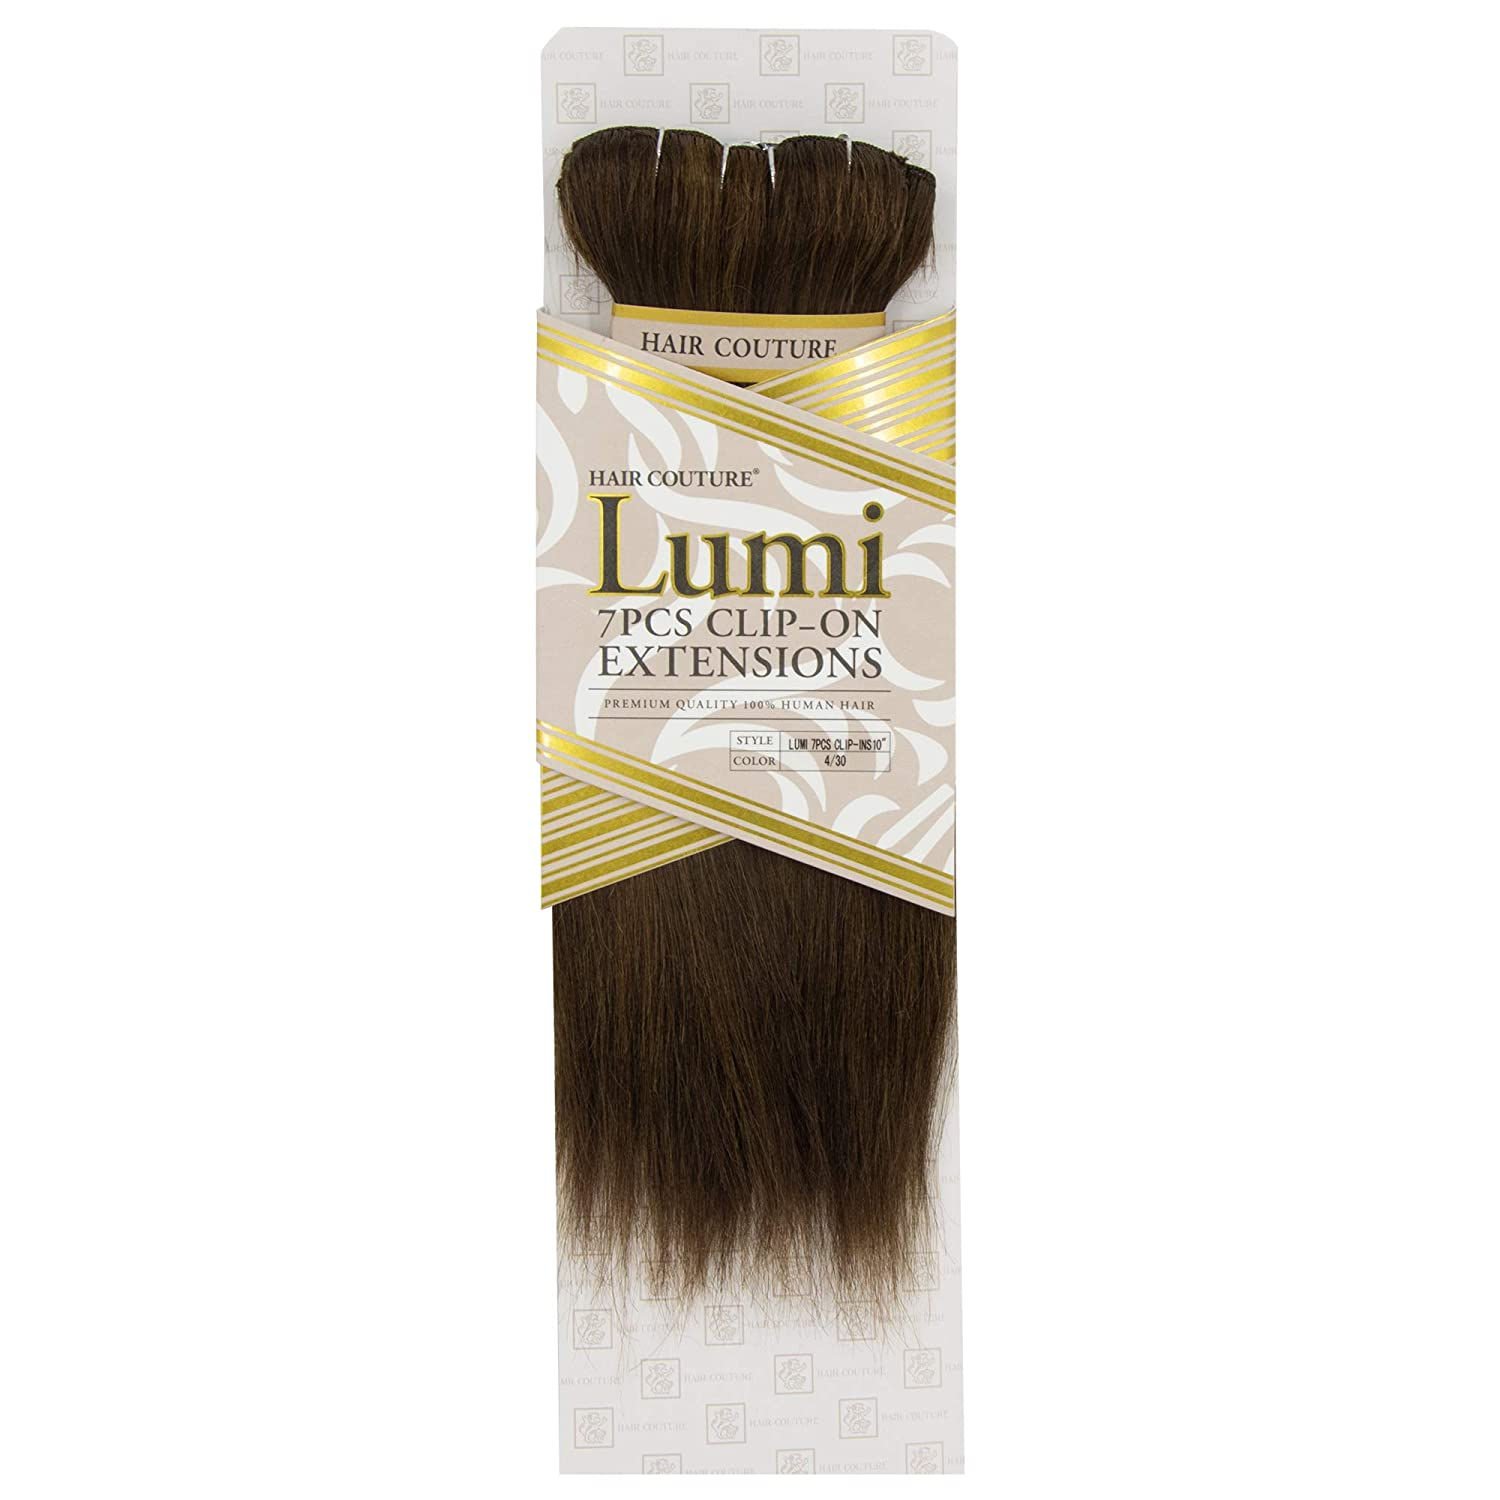 HAIR COUTURE Clip-In Extensions Lumi 7 1B Ranking TOP3 Piece Clip-Ins 10